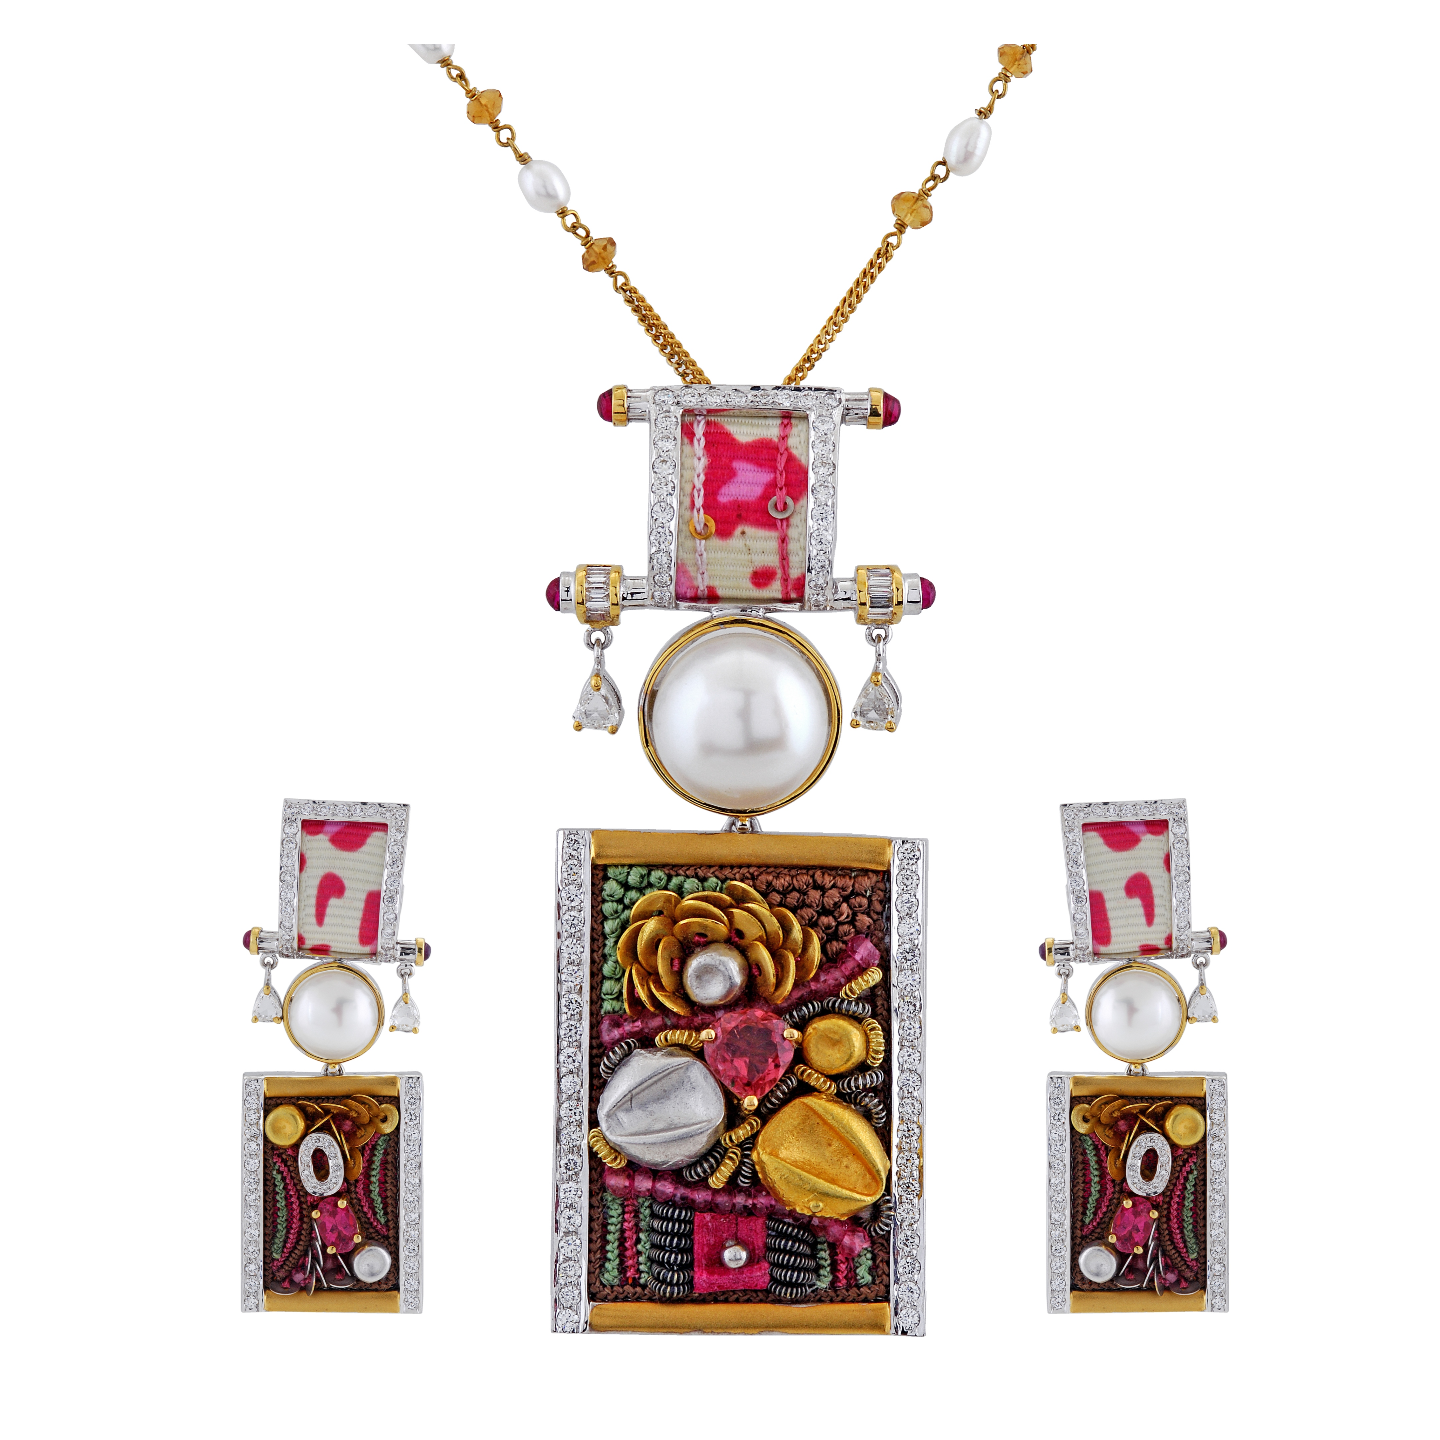 Ornate pendant sets, where clusters of gemstones artistically juxtaposed with gold wires, using the art of embroidery and jewel making